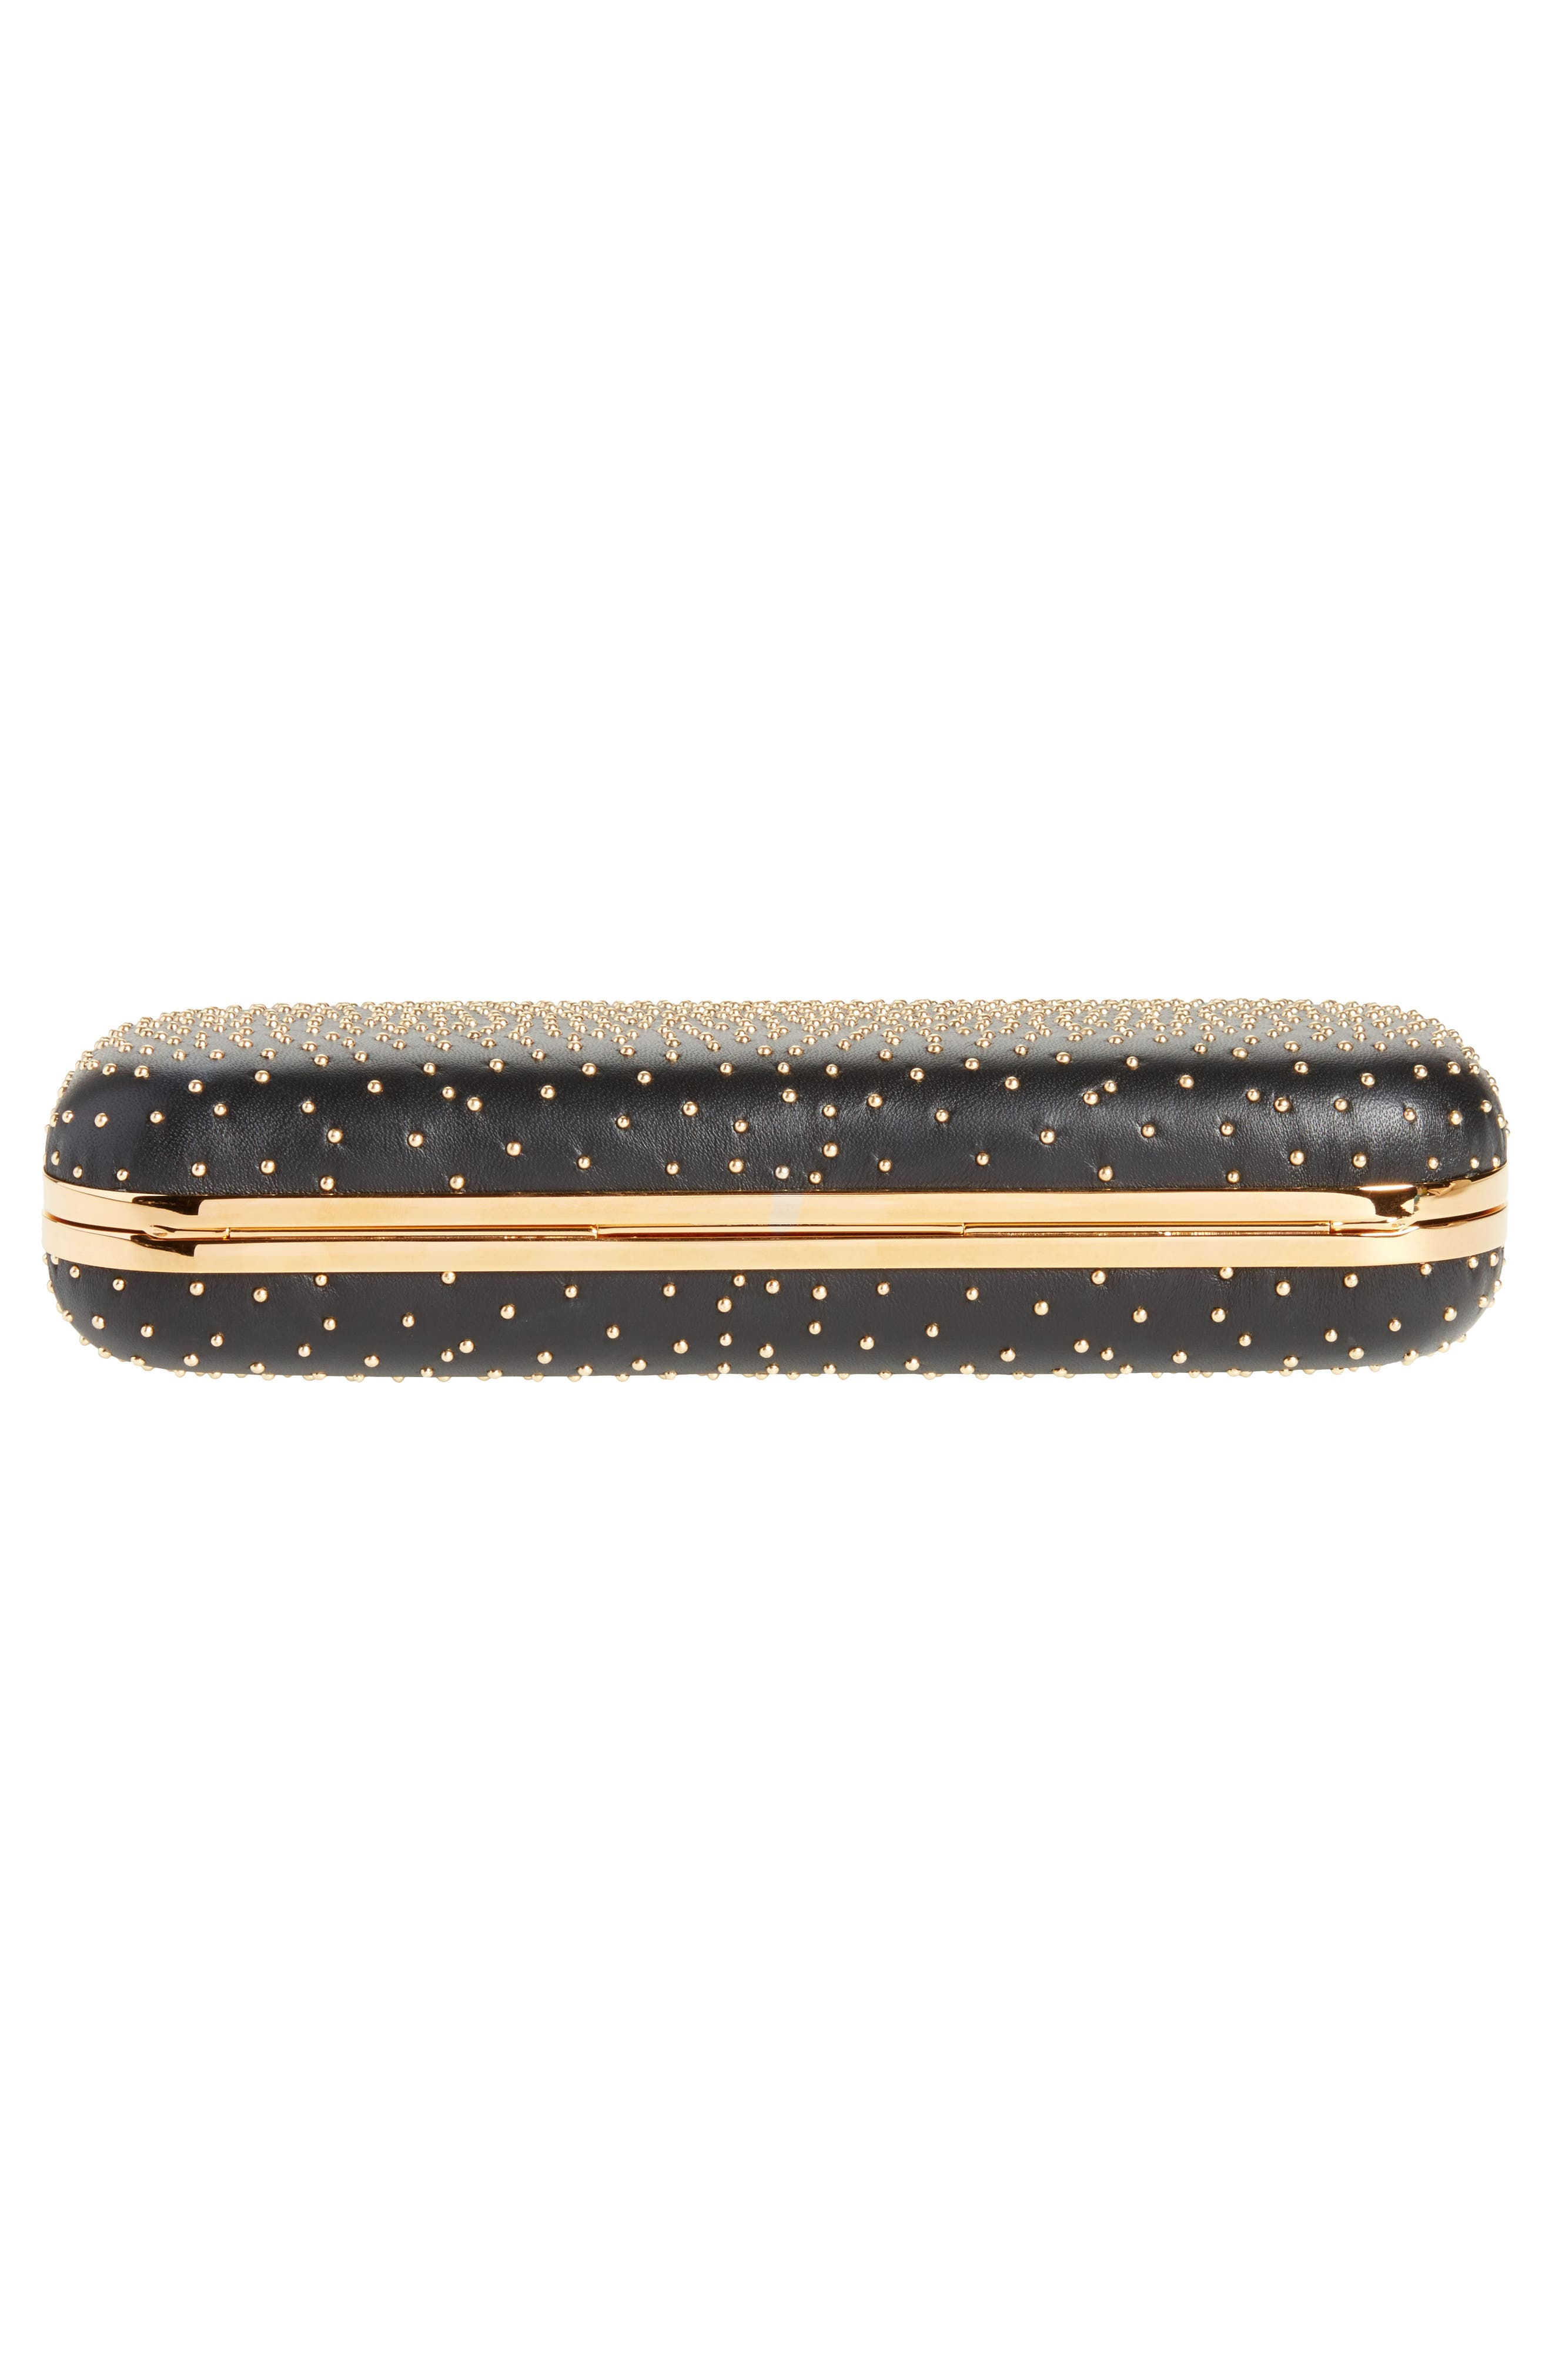 Studded Leather Knuckle Clutch,                             Alternate thumbnail 6, color,                             001